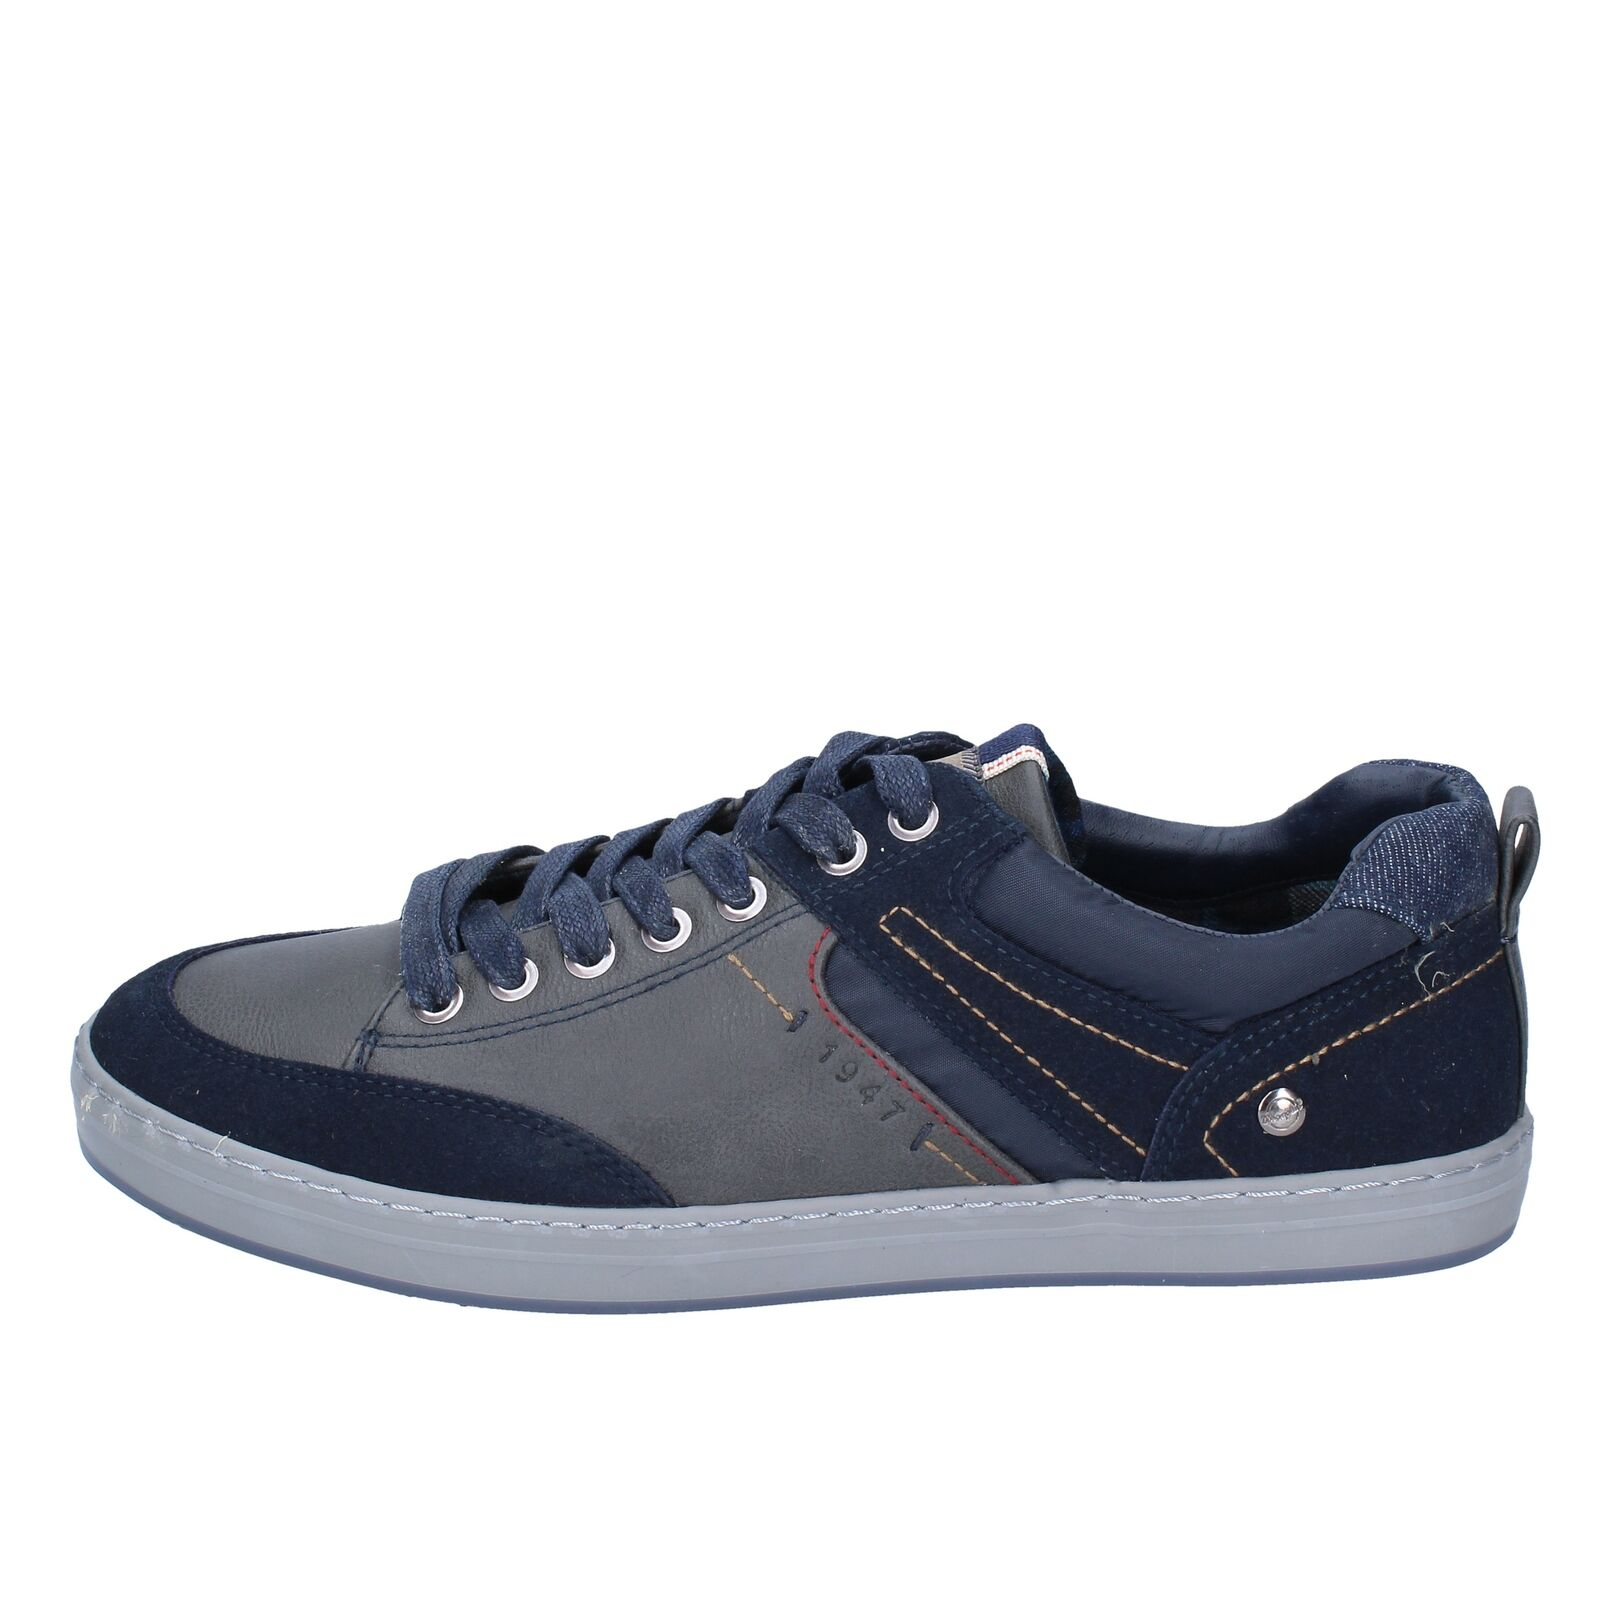 BS772 WRANGLER  shoes bluee synthetic leather textile men sneakers lace-up autumn